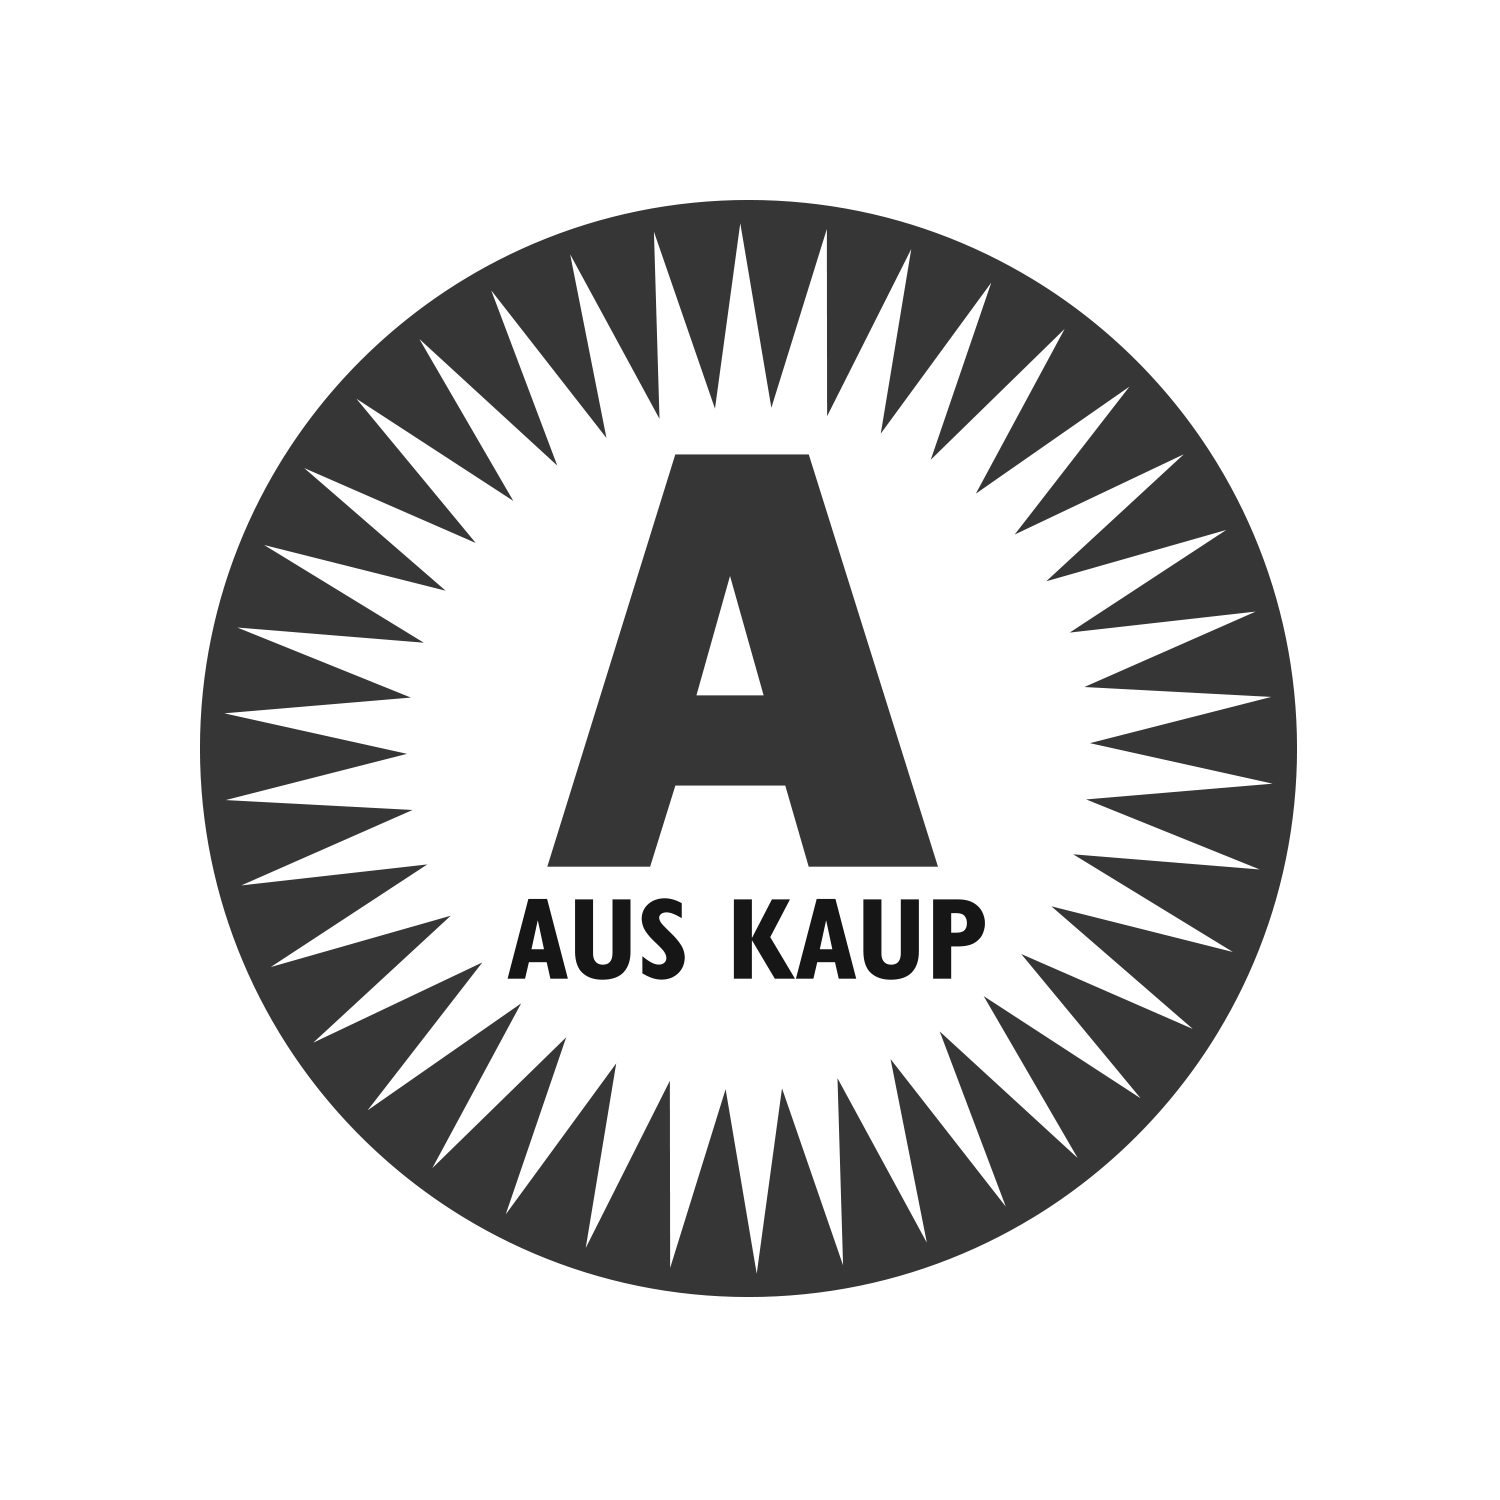 auskaup